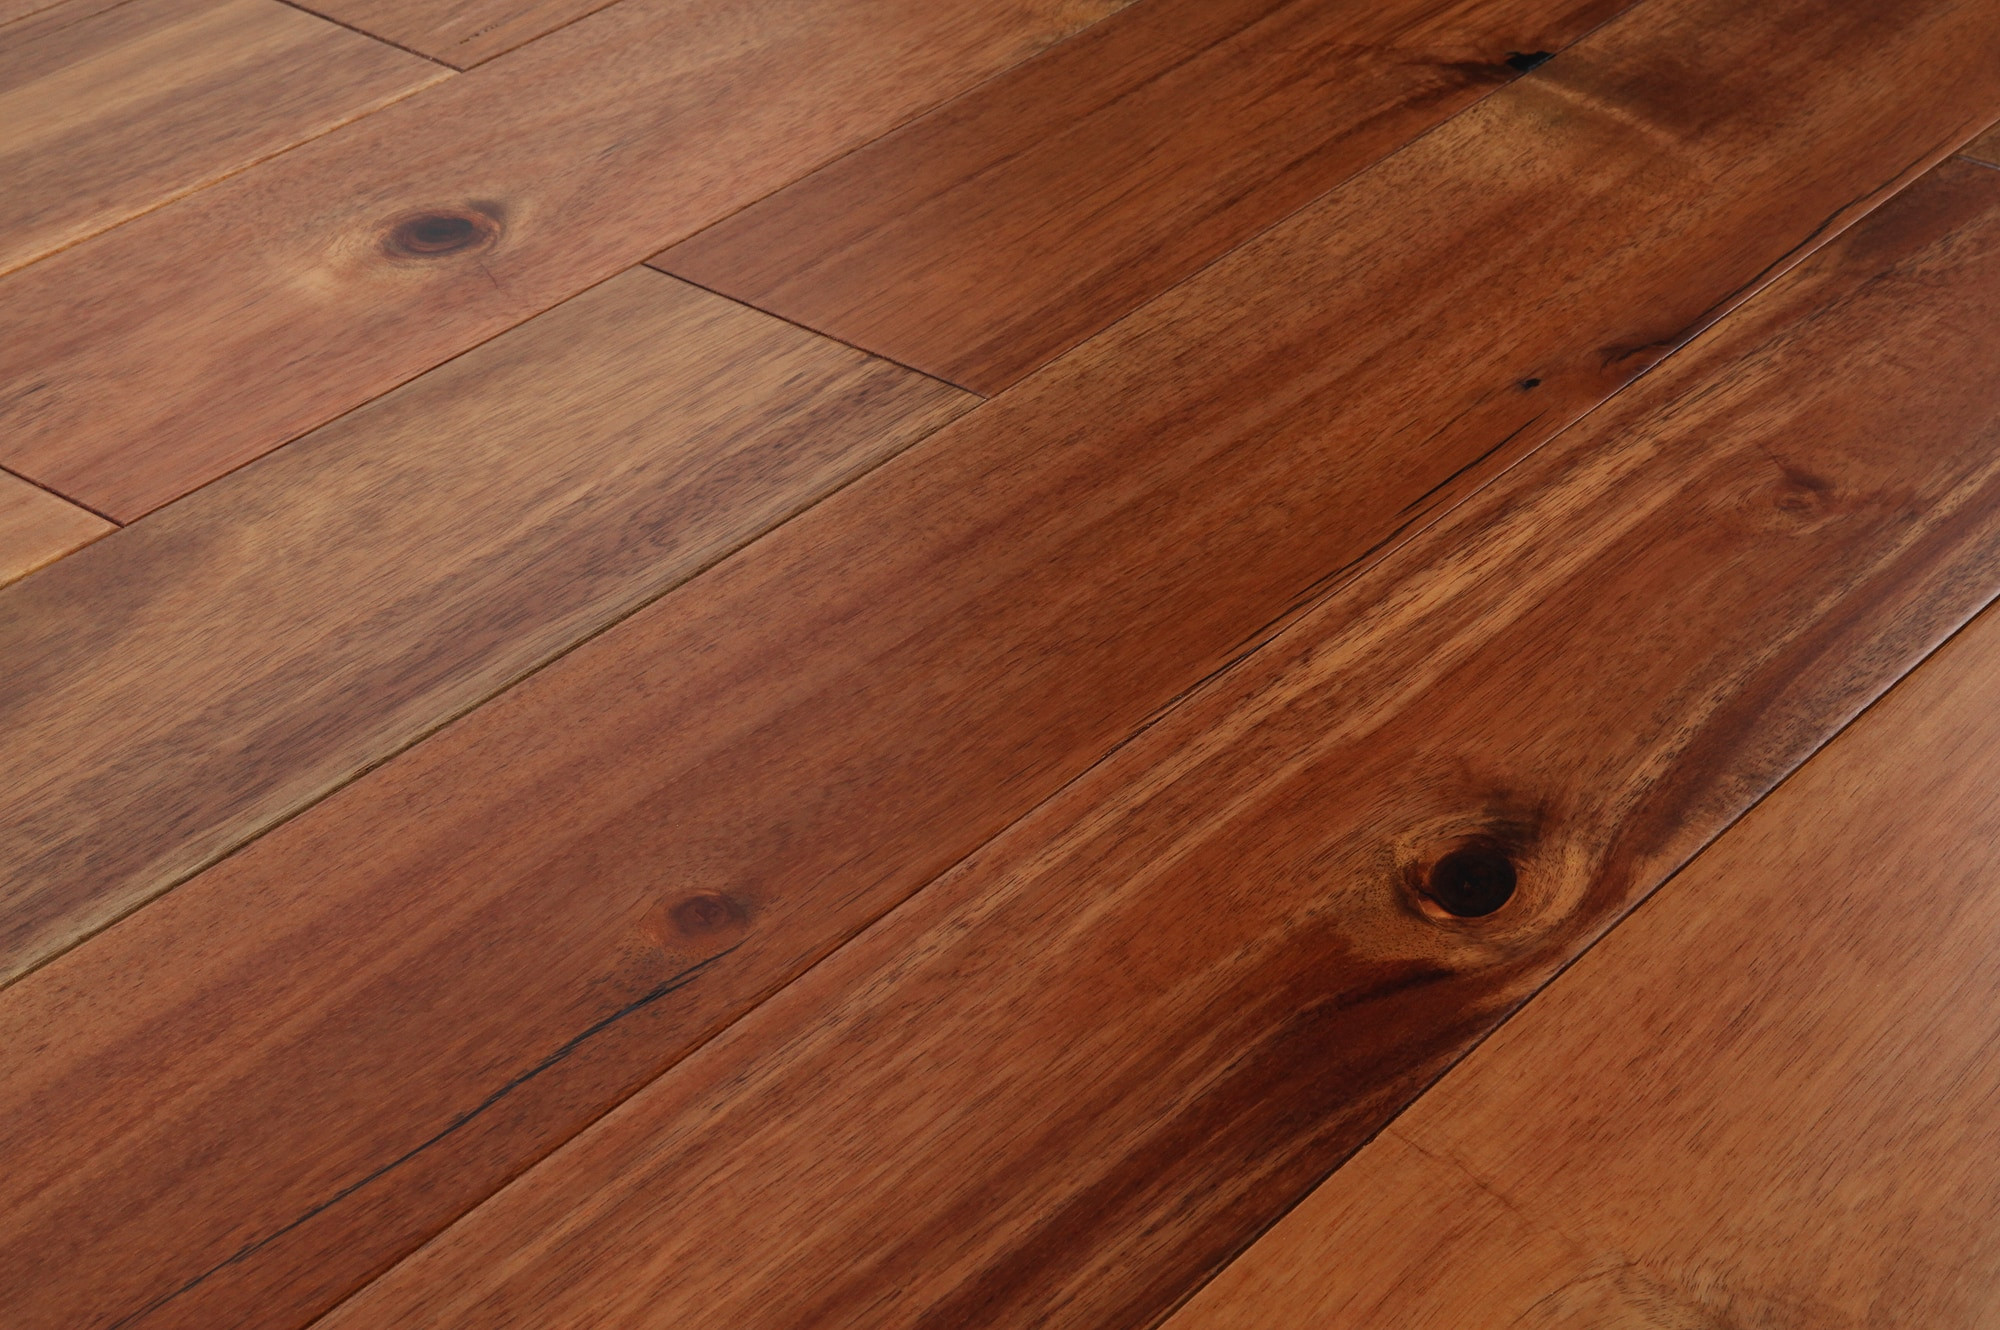 28 Stylish tobacco Road Acacia Hardwood Flooring 2021 free download tobacco road acacia hardwood flooring of hardwood new acacia hardwood pertaining to palmer donavin flooring training outline 1 hardwood flooring construction solid e280a2 typically 3 4 thick